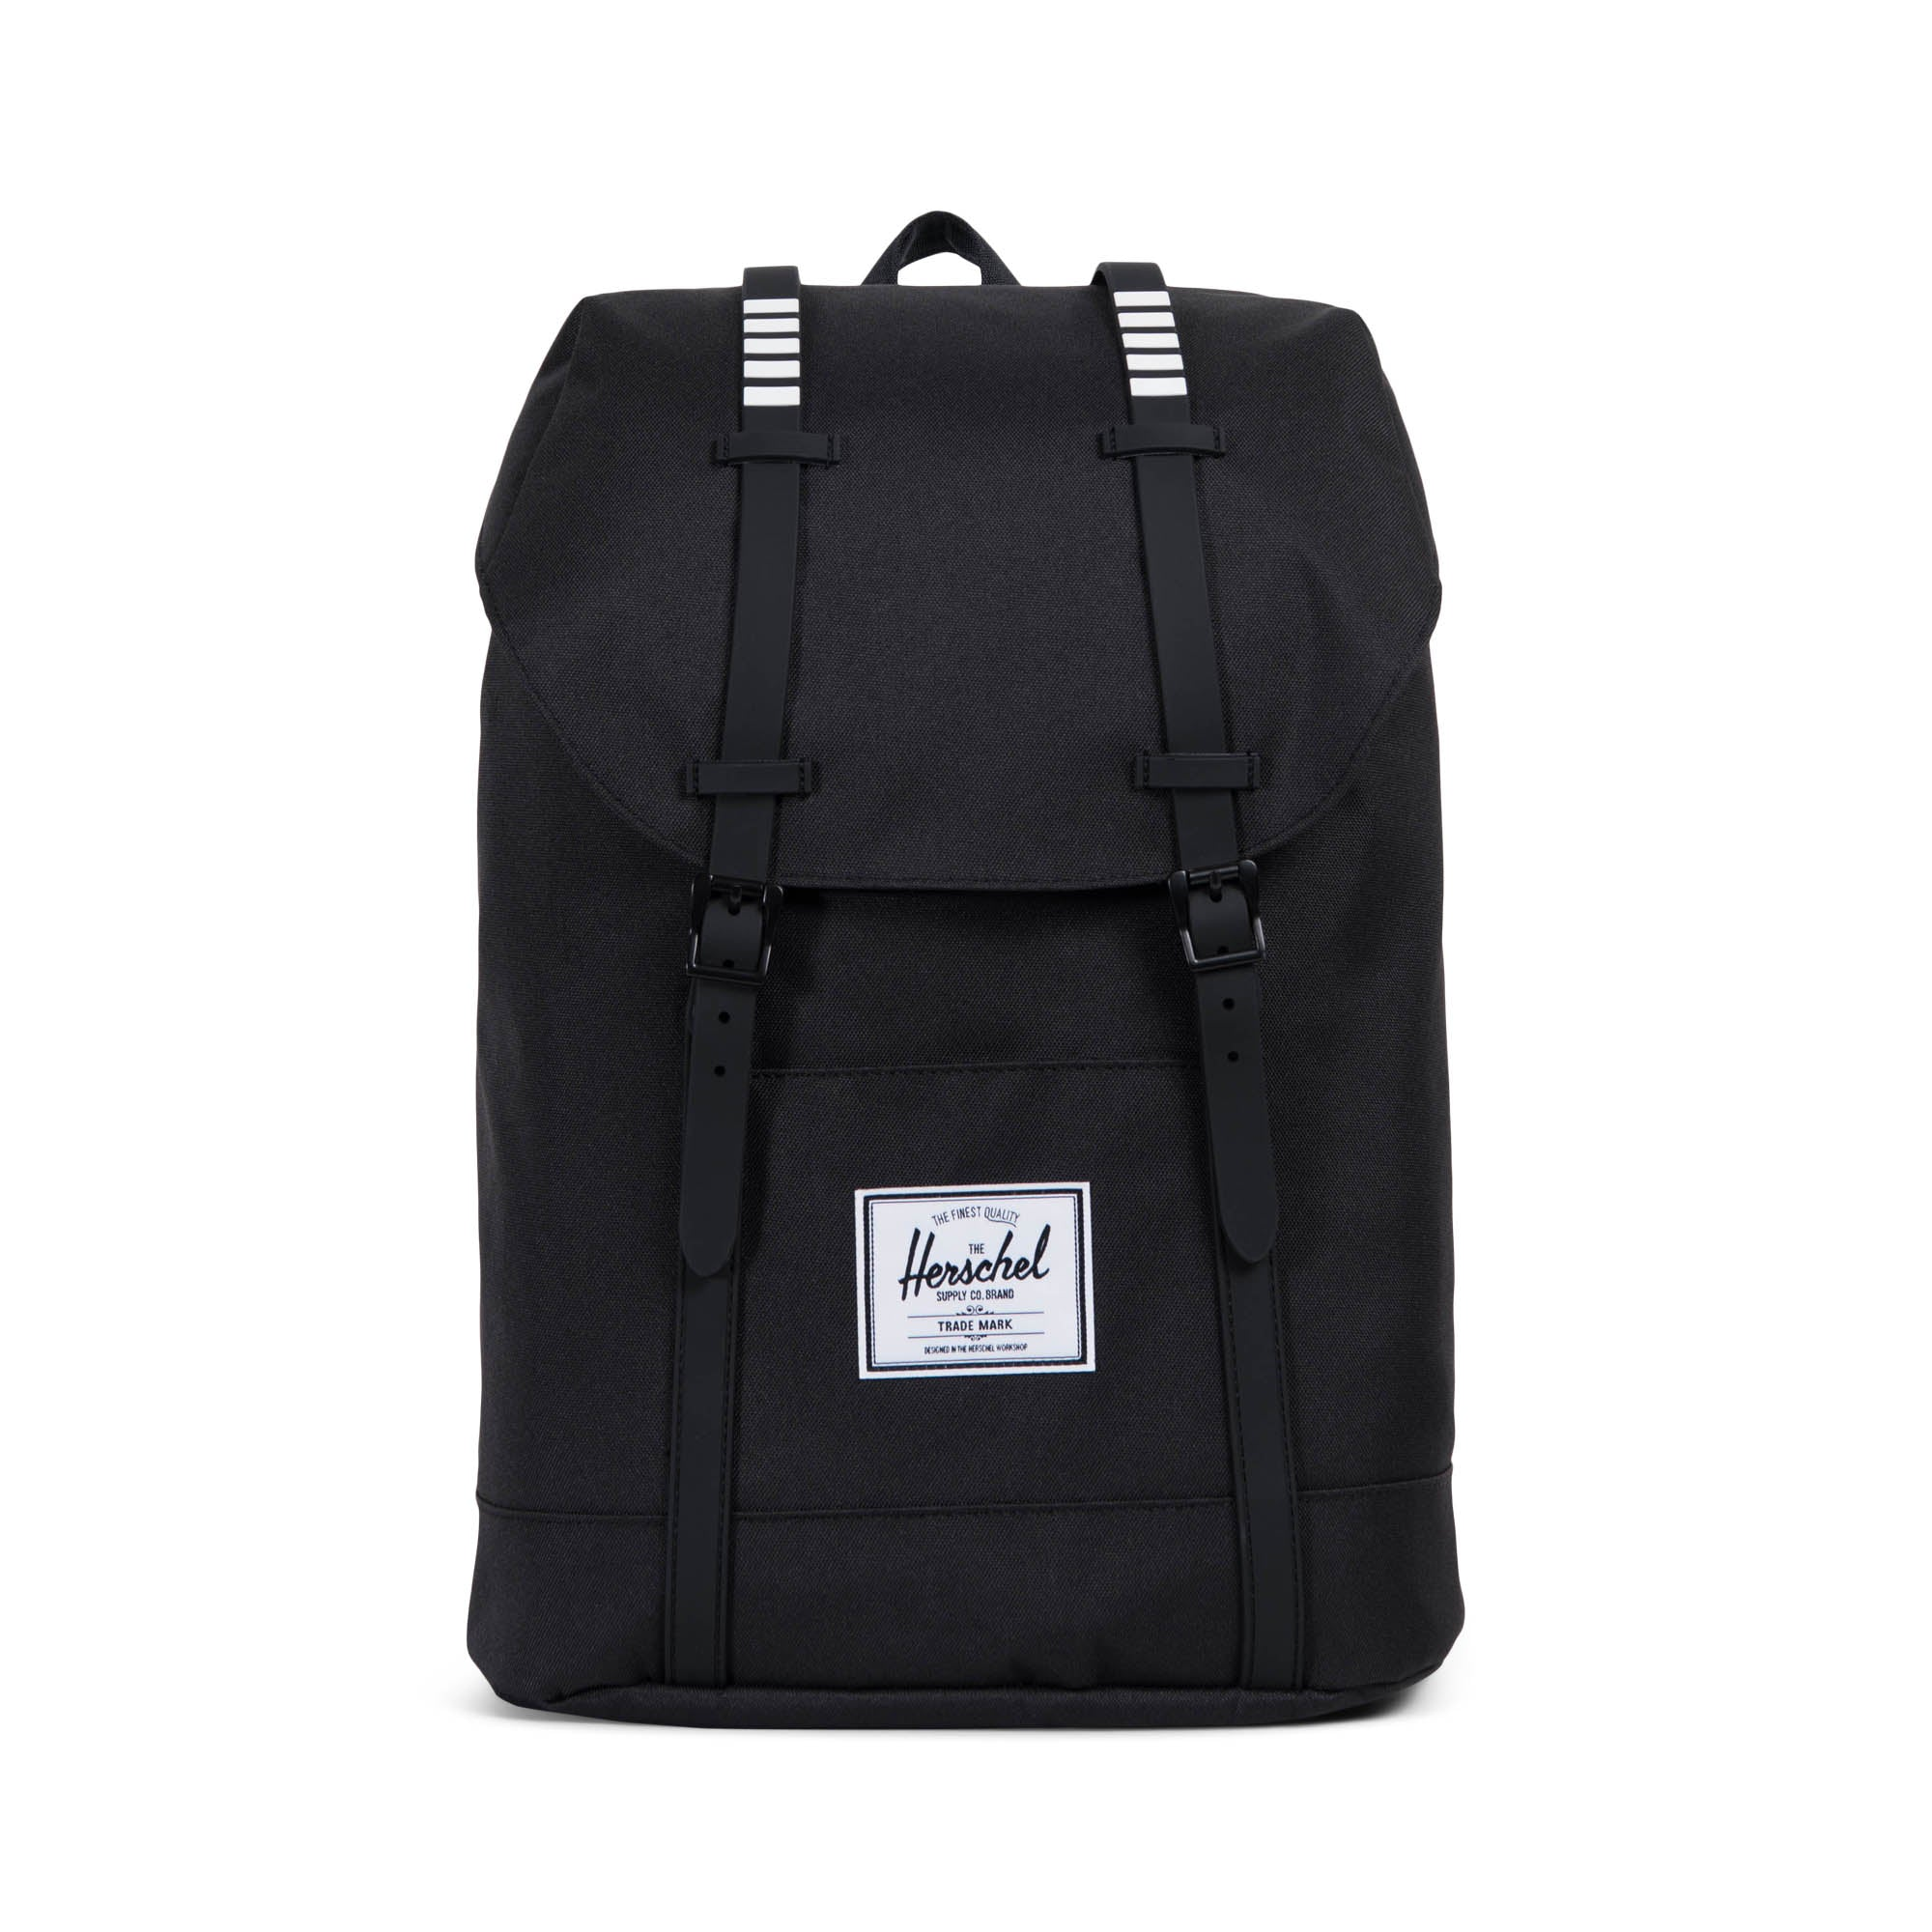 b71fc9d49d7 Herschel Supply Co.Retreat Backpack in Black with Black Stripe ...